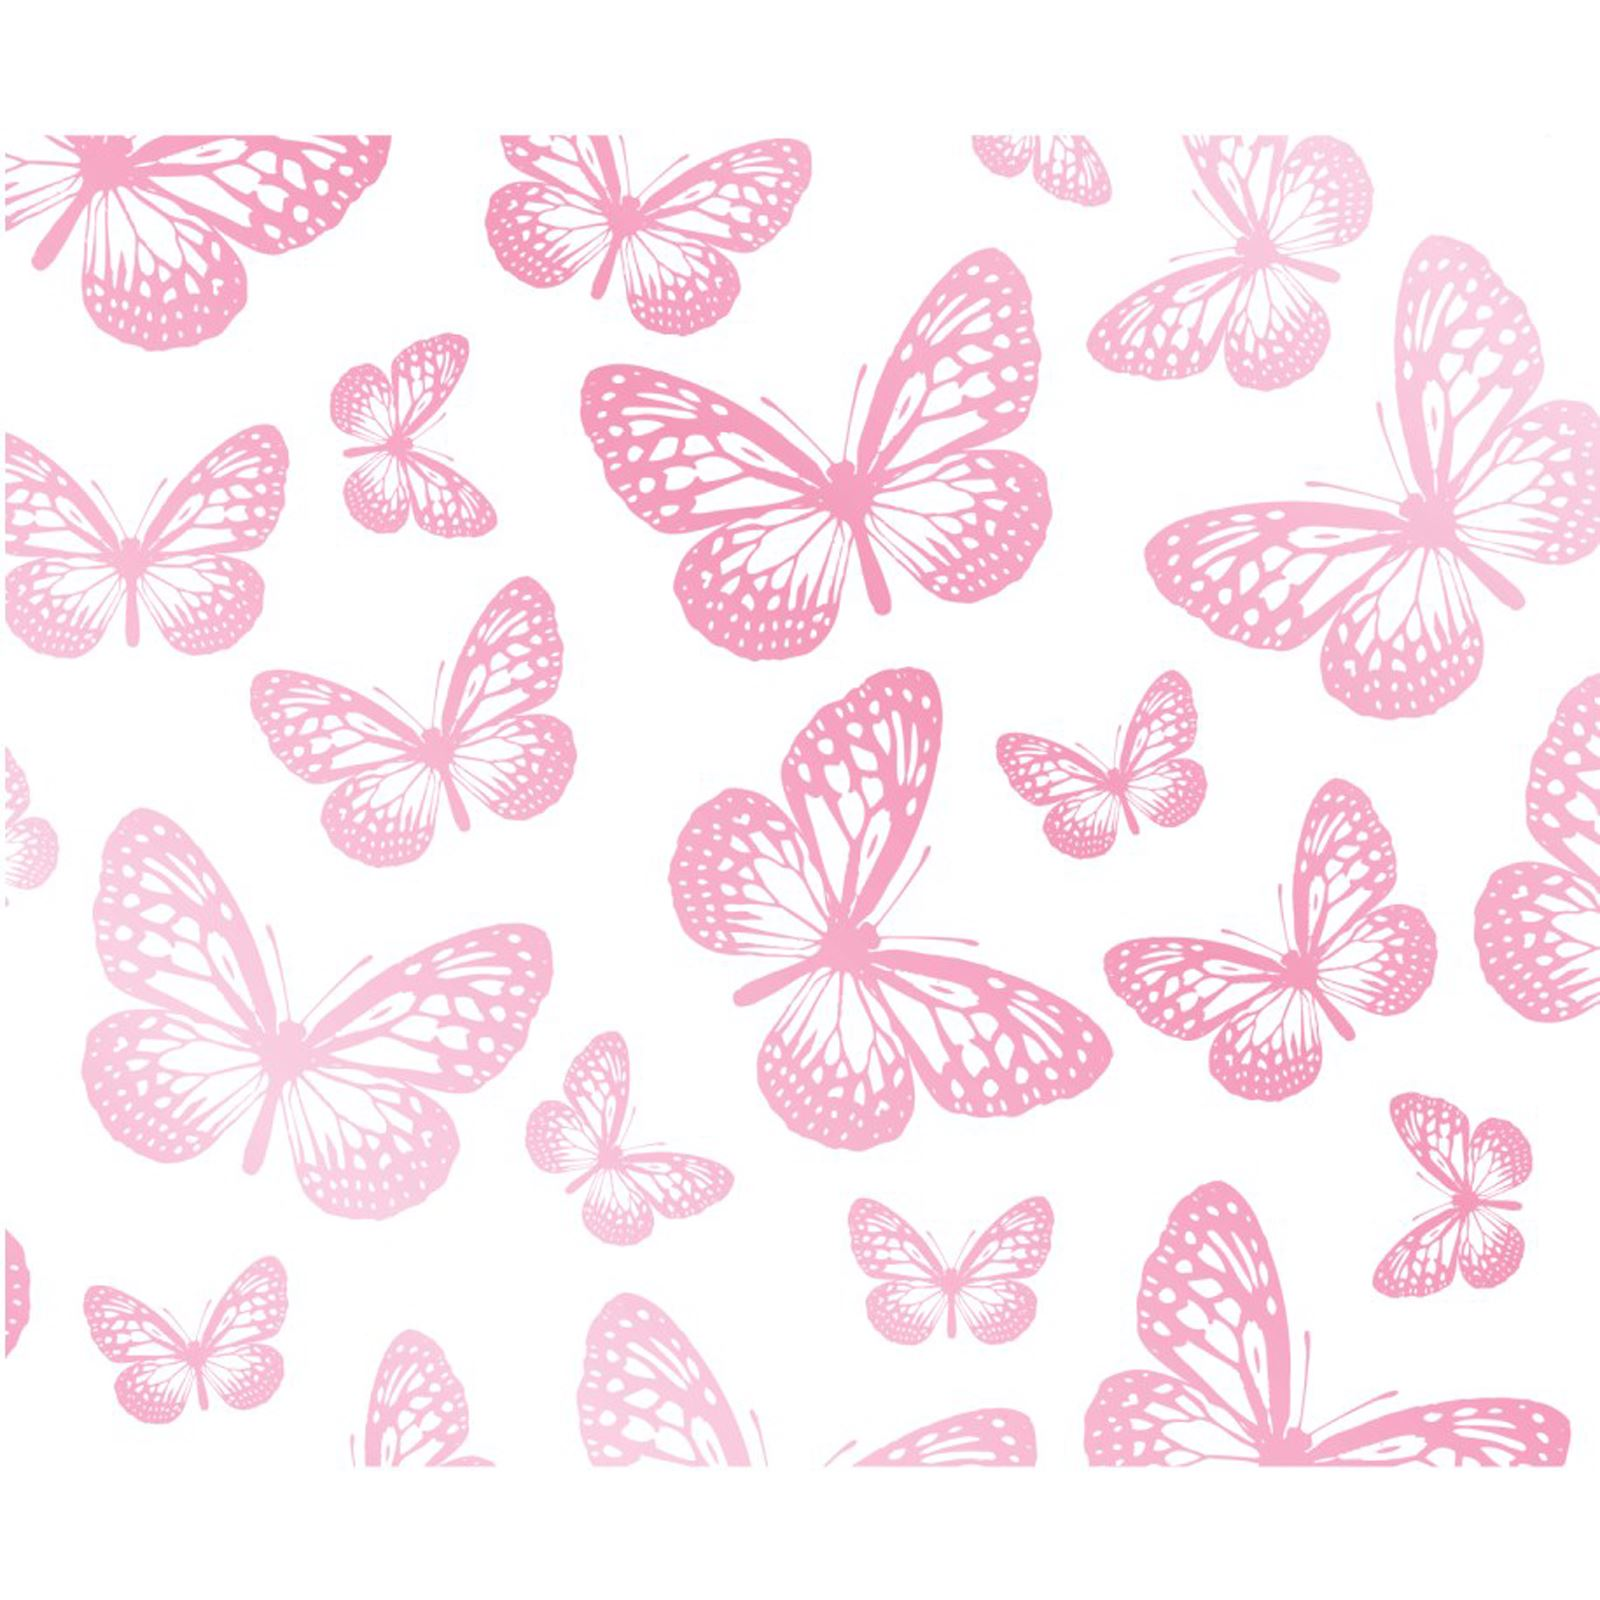 butterfly wallpaper white pink fd40275 new butterflies. Black Bedroom Furniture Sets. Home Design Ideas